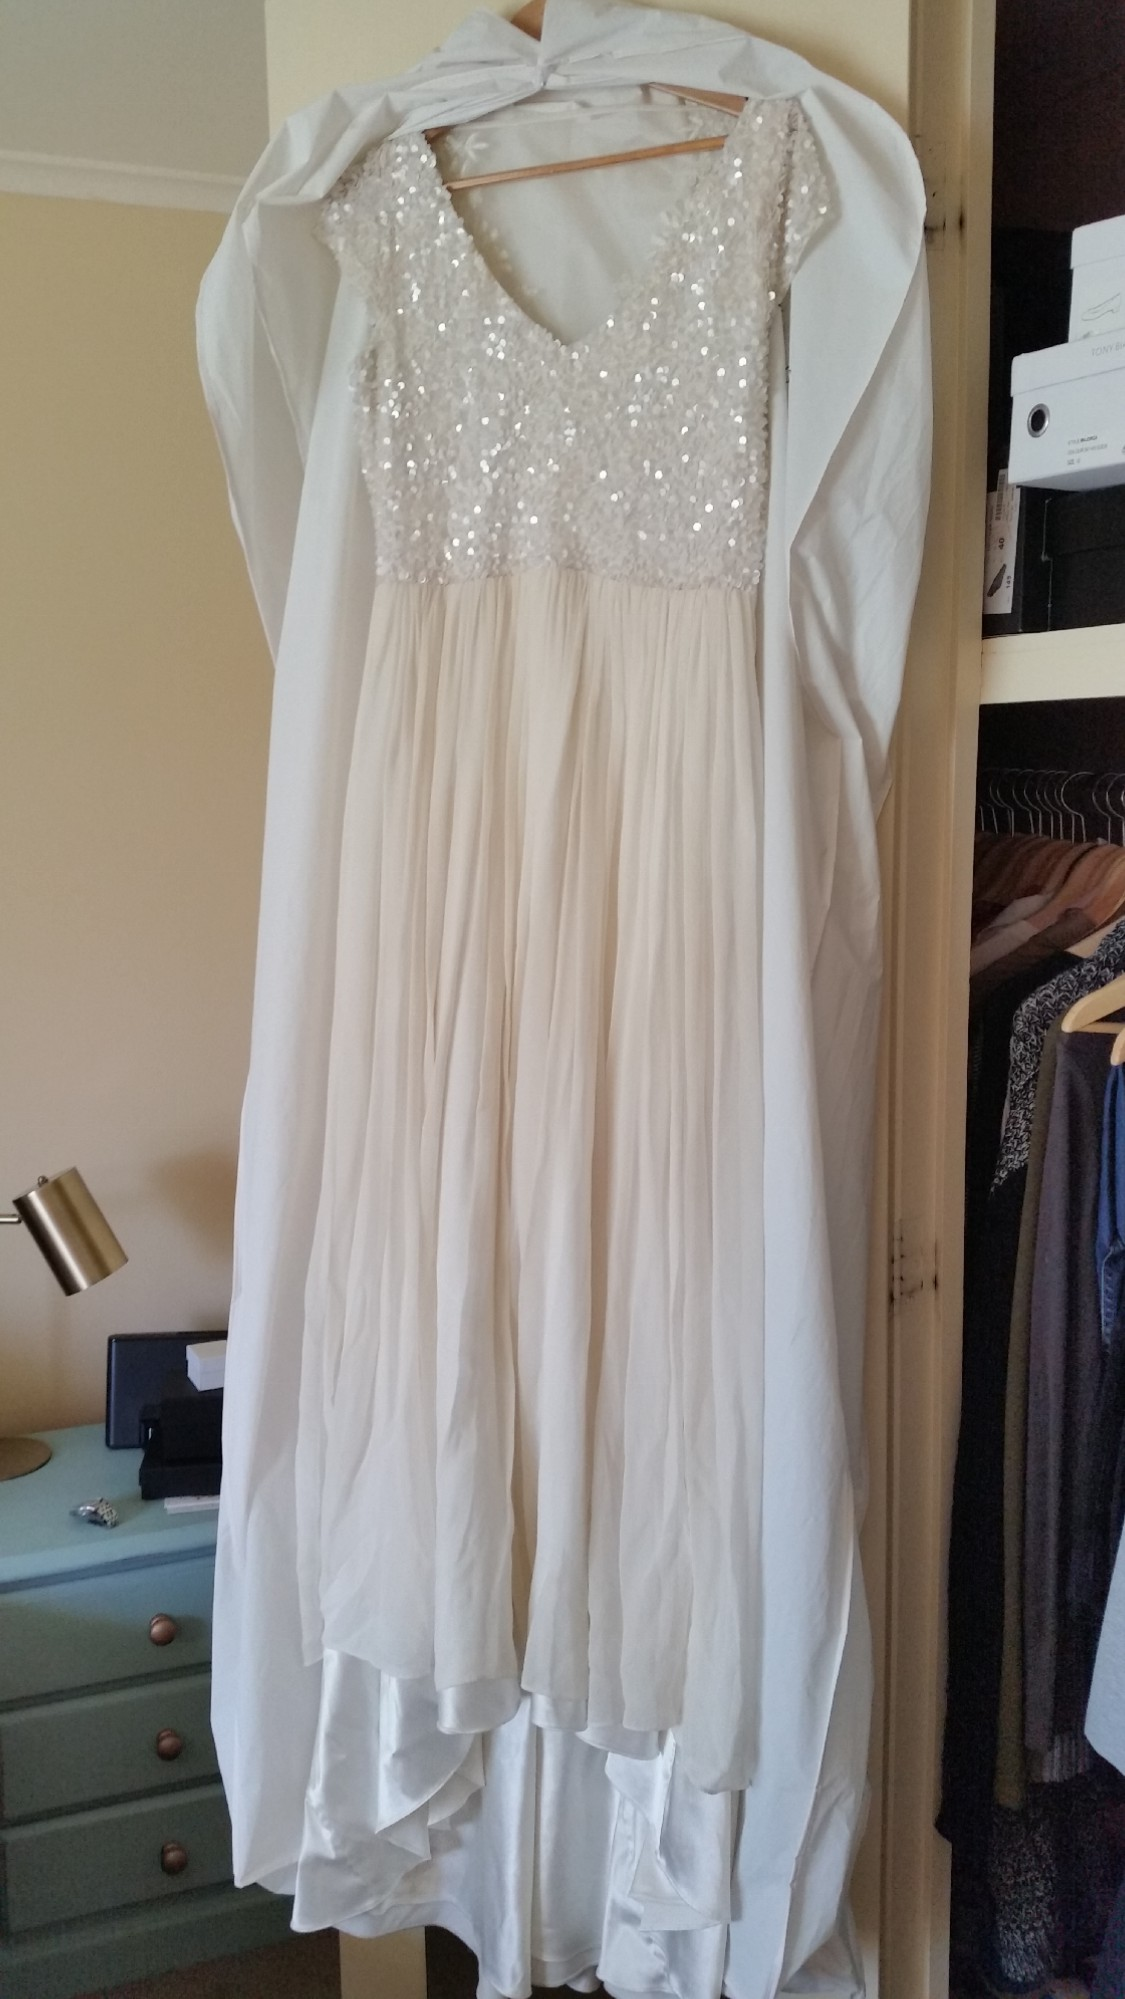 Karen willis holmes kayla second hand wedding dress on sale for Second hand wedding dresses for sale